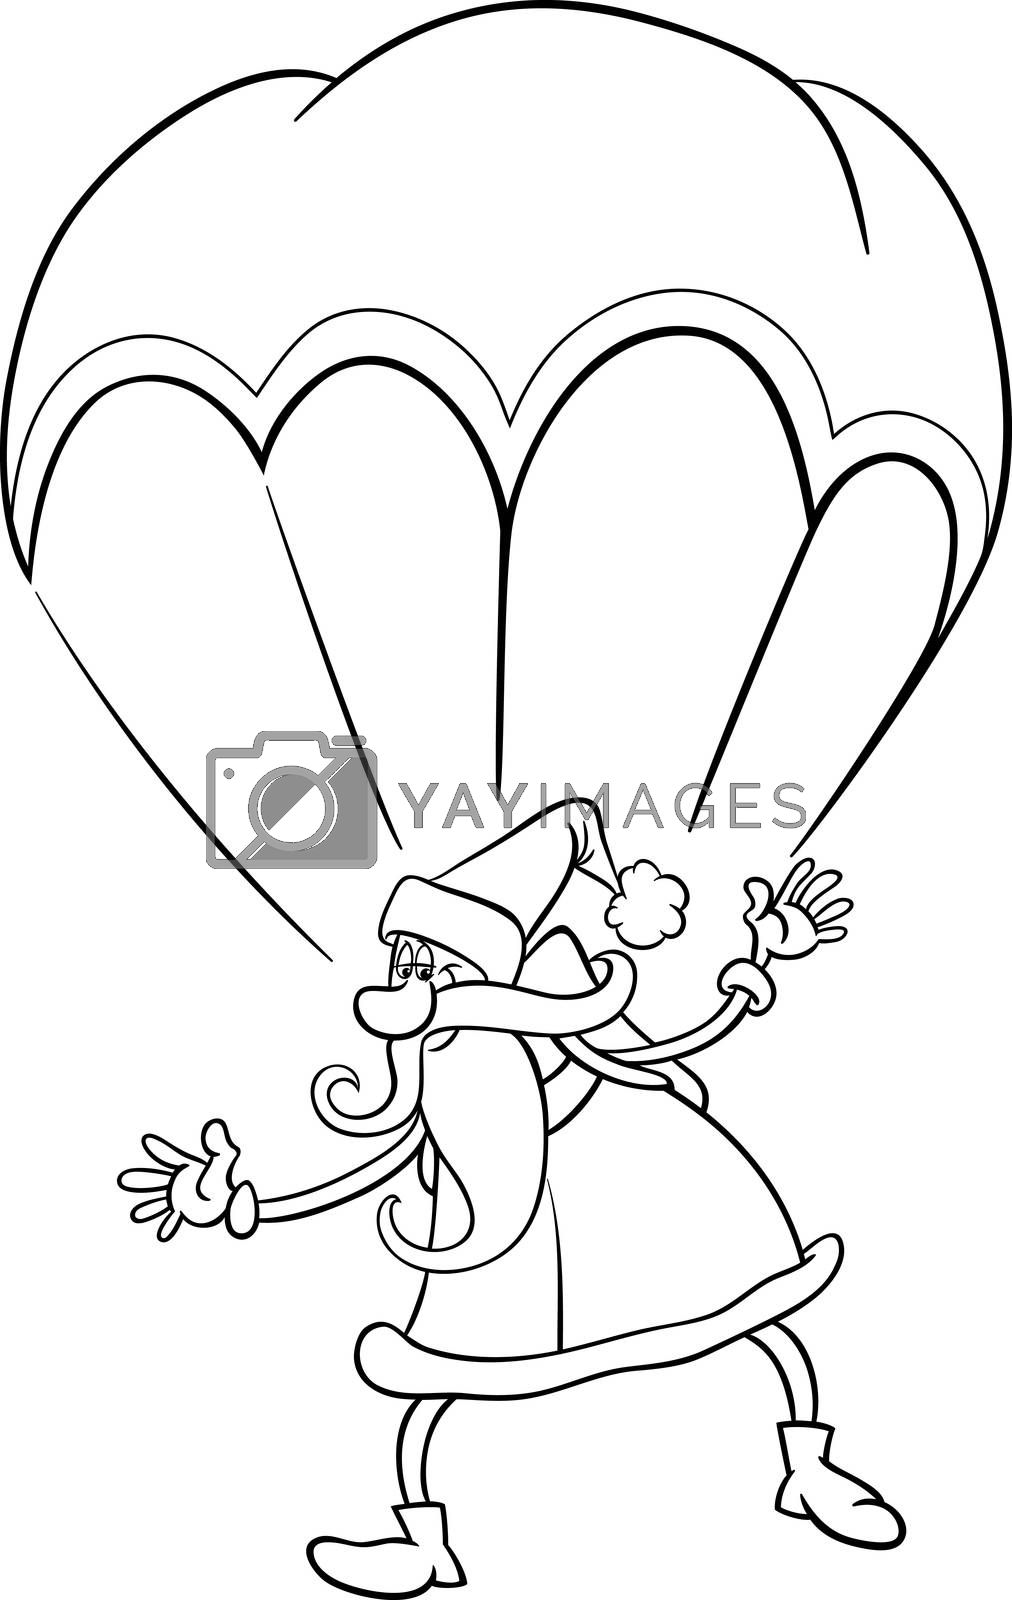 santa on parachute cartoon coloring page by izakowski